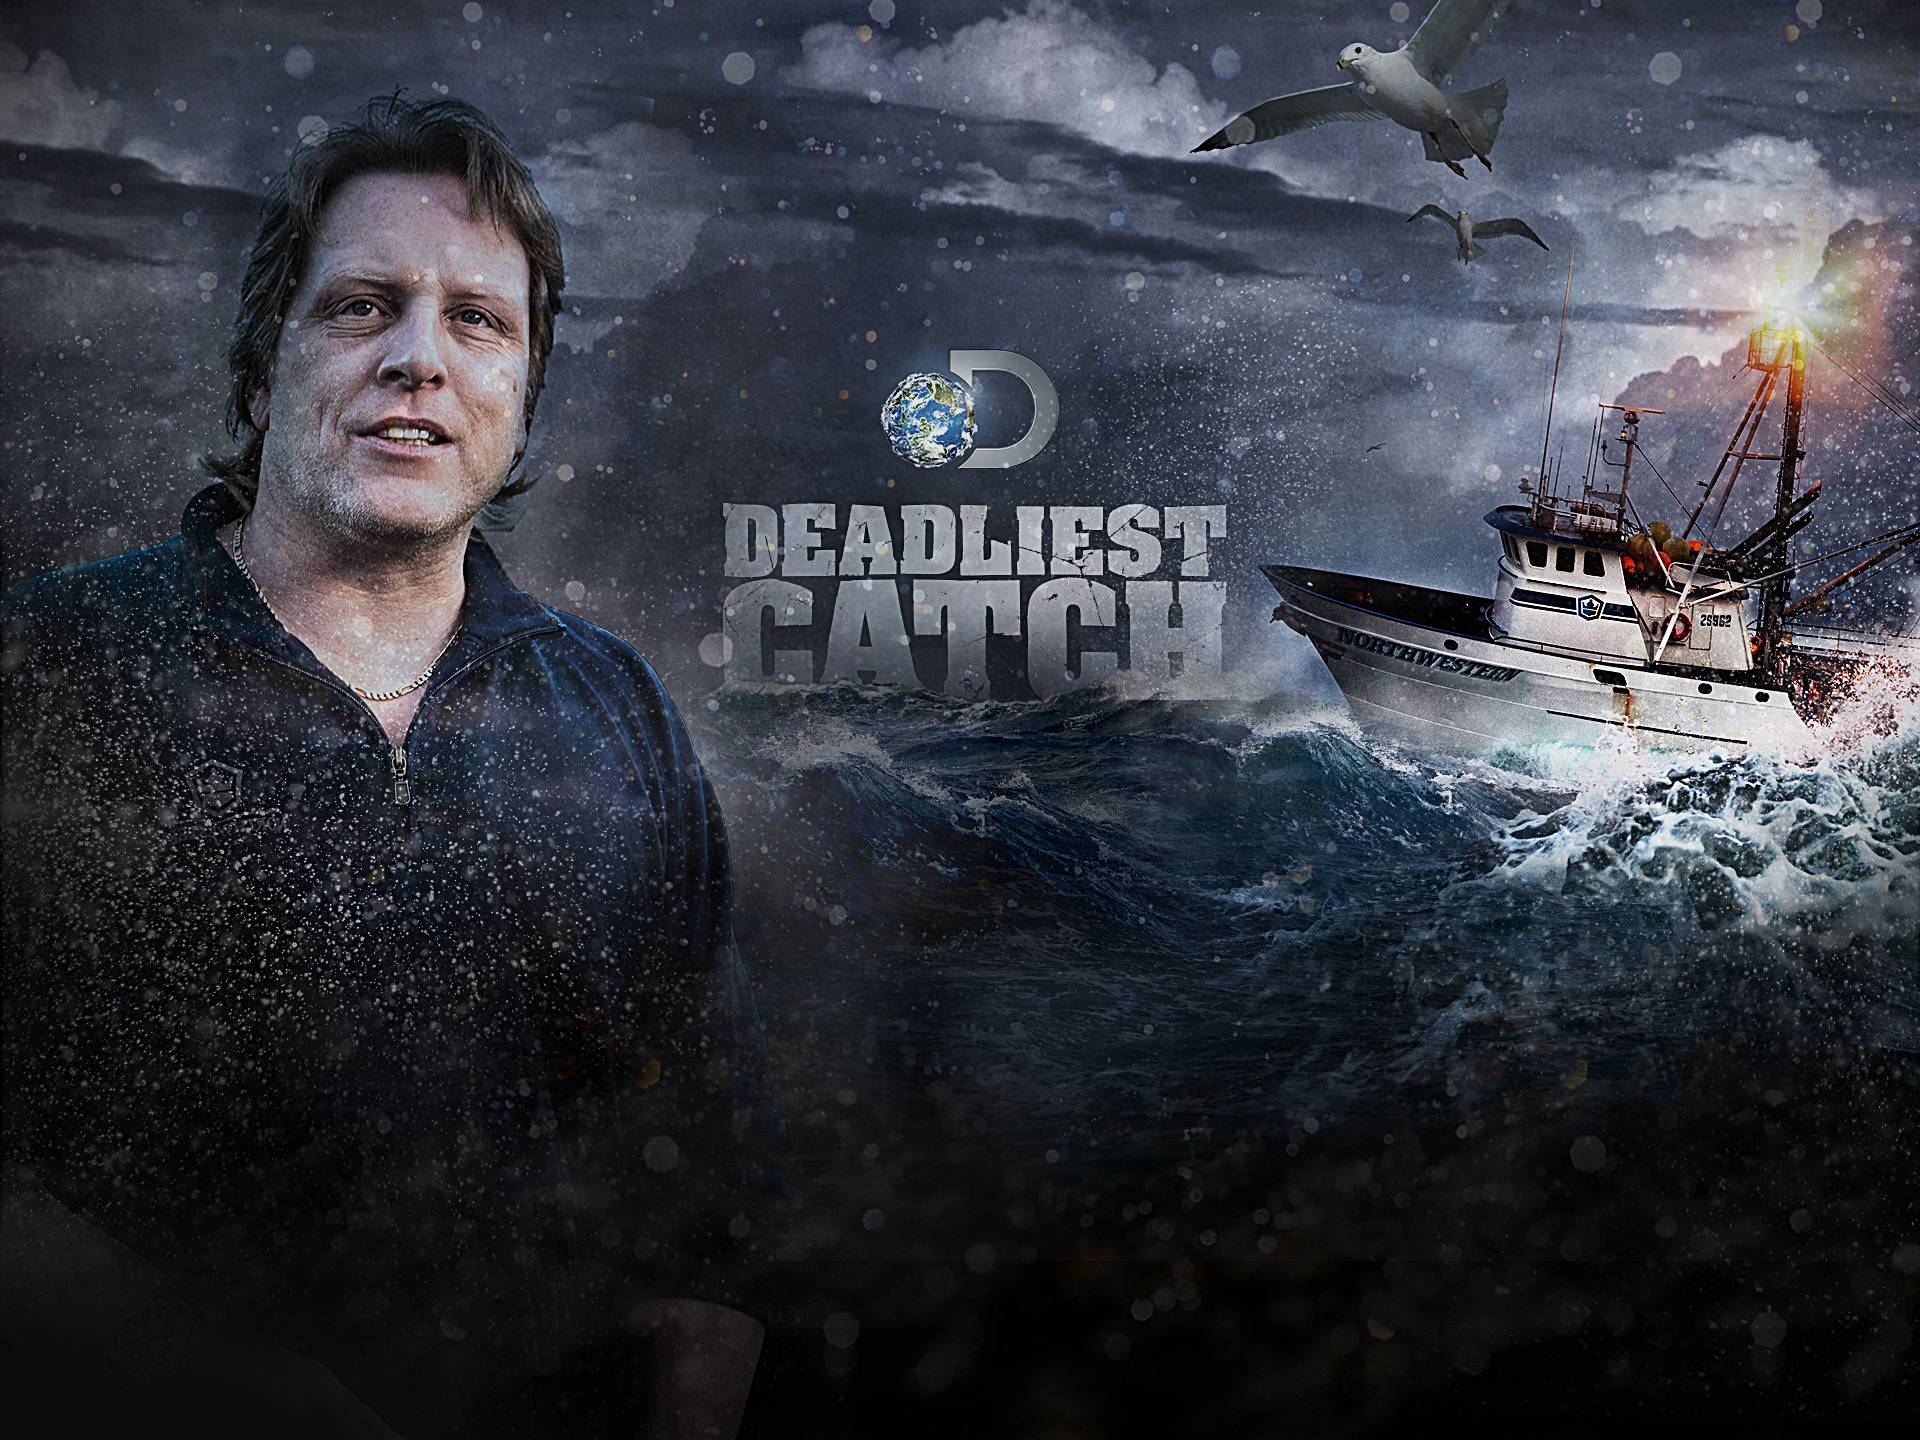 Immerse yourself in the ships from Deadliest Catch